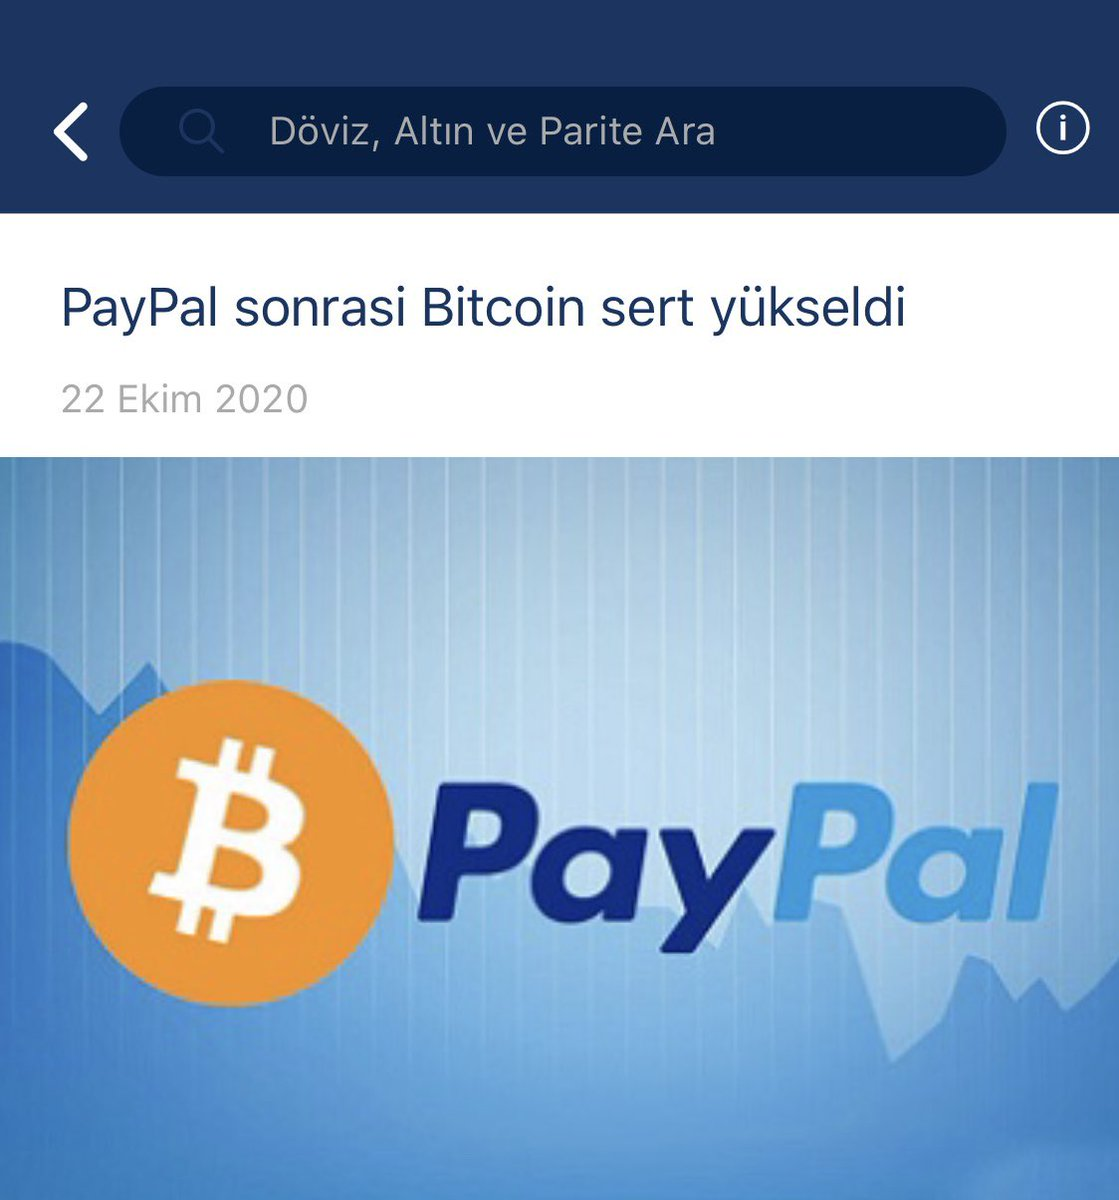 PayPal'da yeni ödeme devri başlıyor. Haberin devamı için >>> https://t.co/IxOEacI1Fb #paypal #coin #kriptopara #Bitcoin #cryptocurrencies #crypto #payments https://t.co/2UkNap2KZe